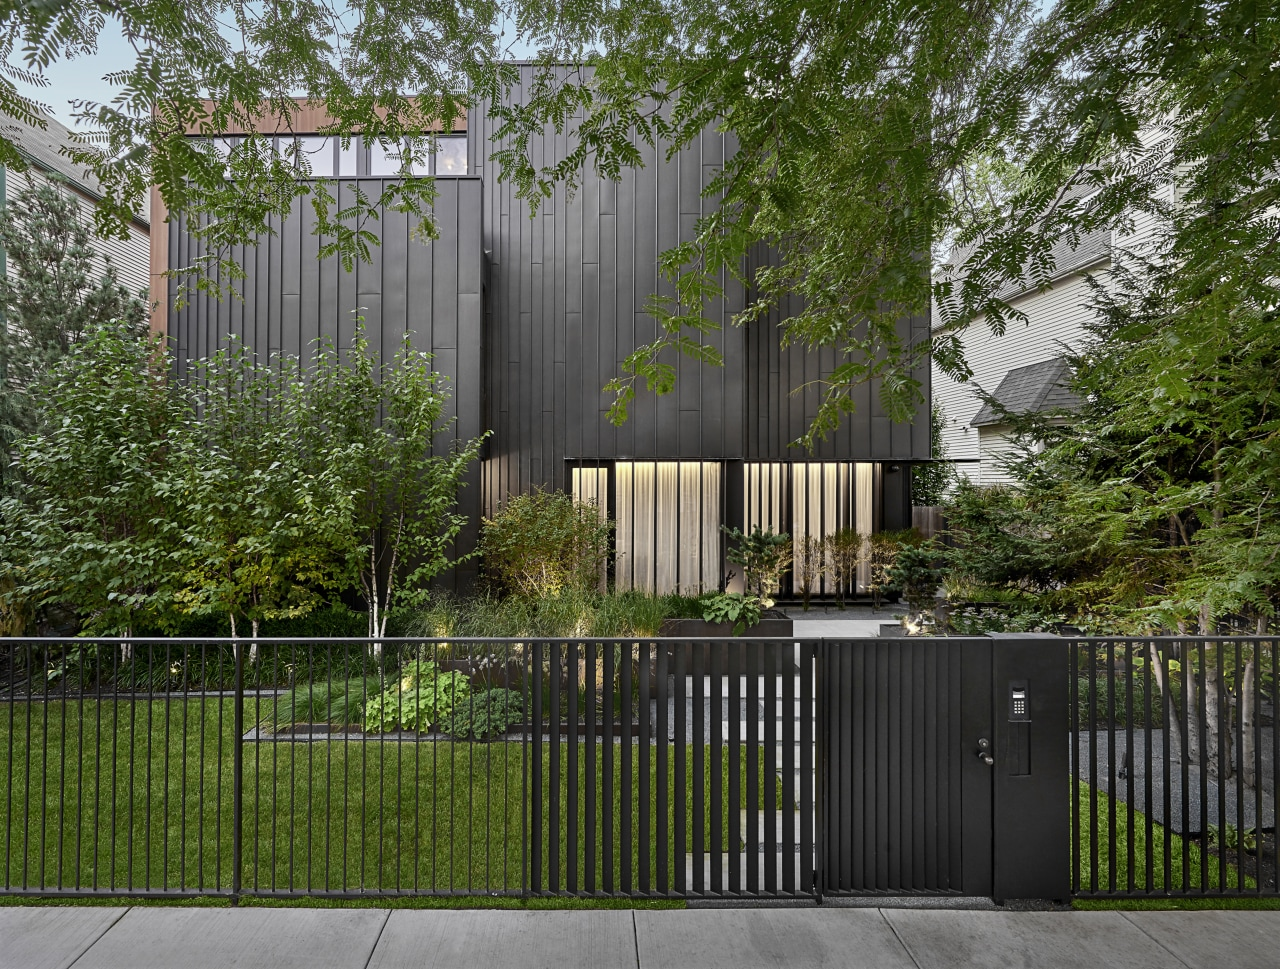 The facade of the home, clad in warm,